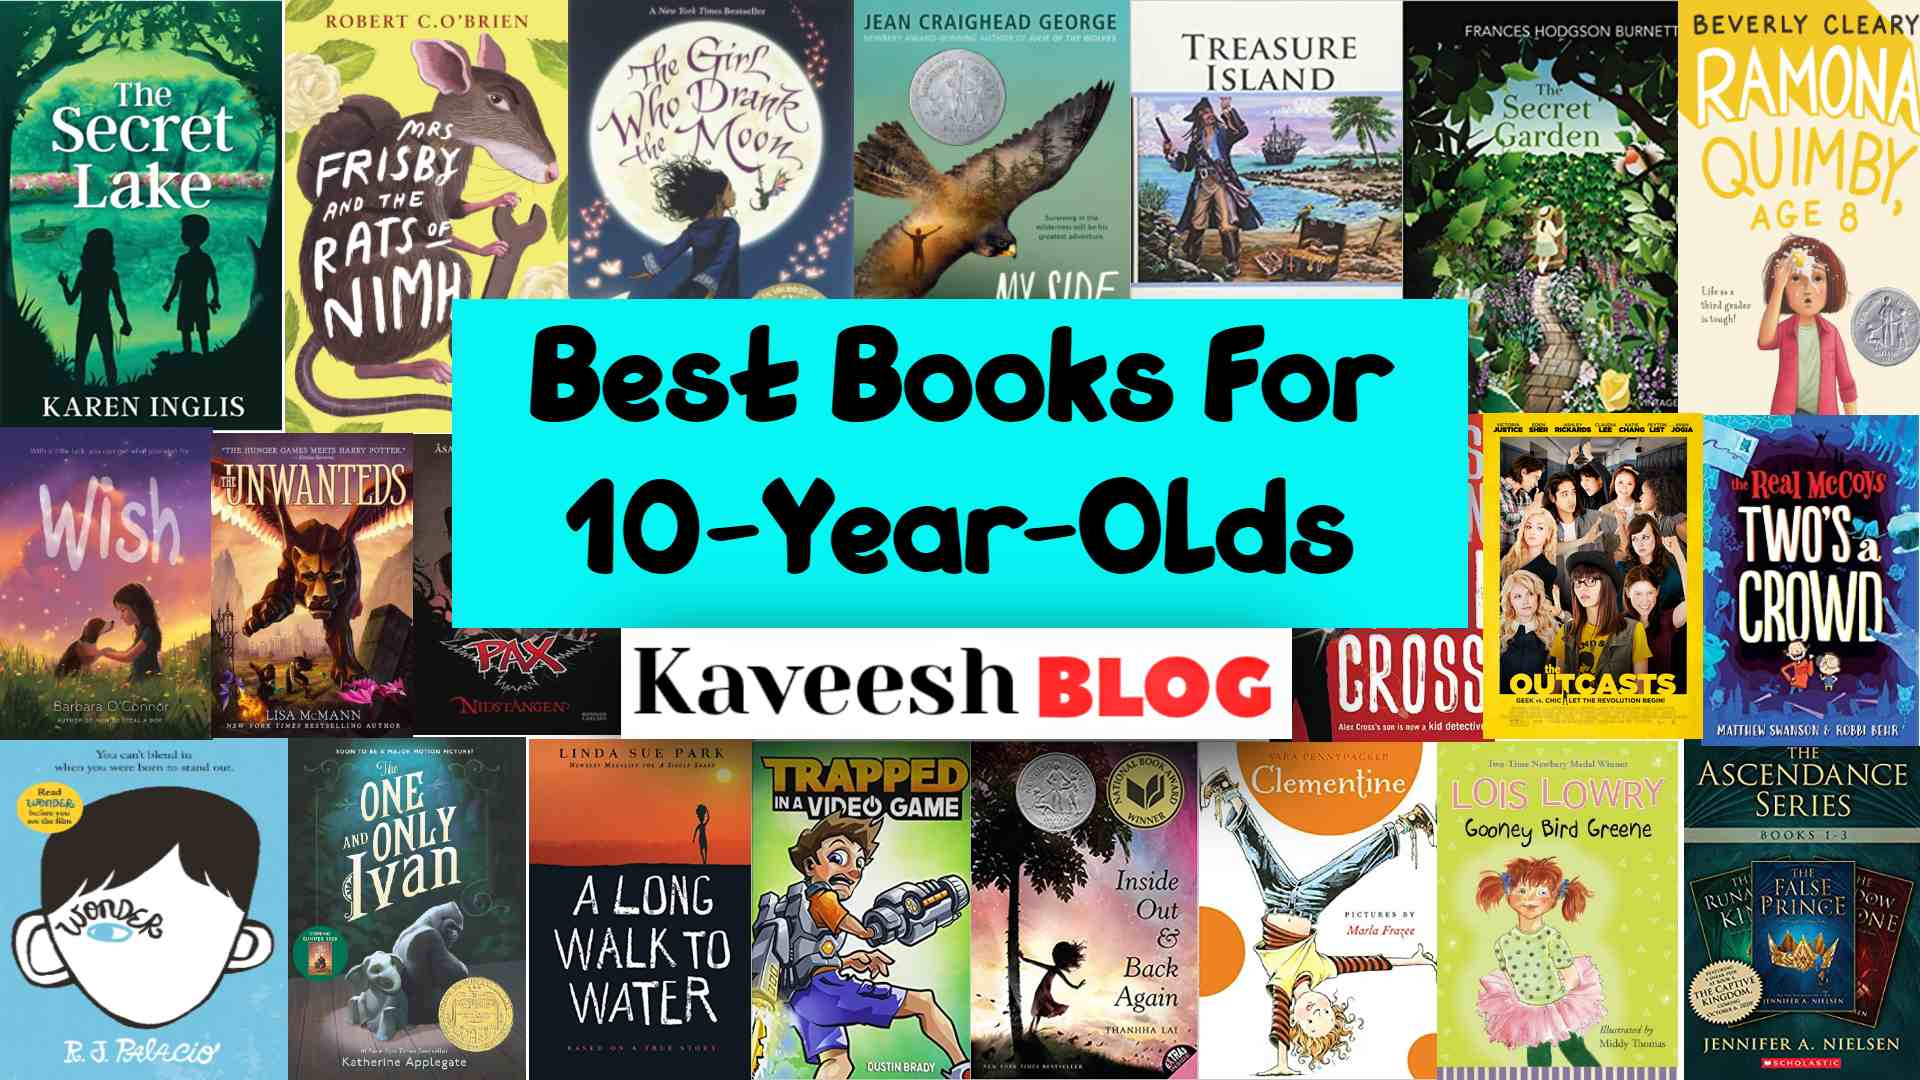 Best books for 10-year-old